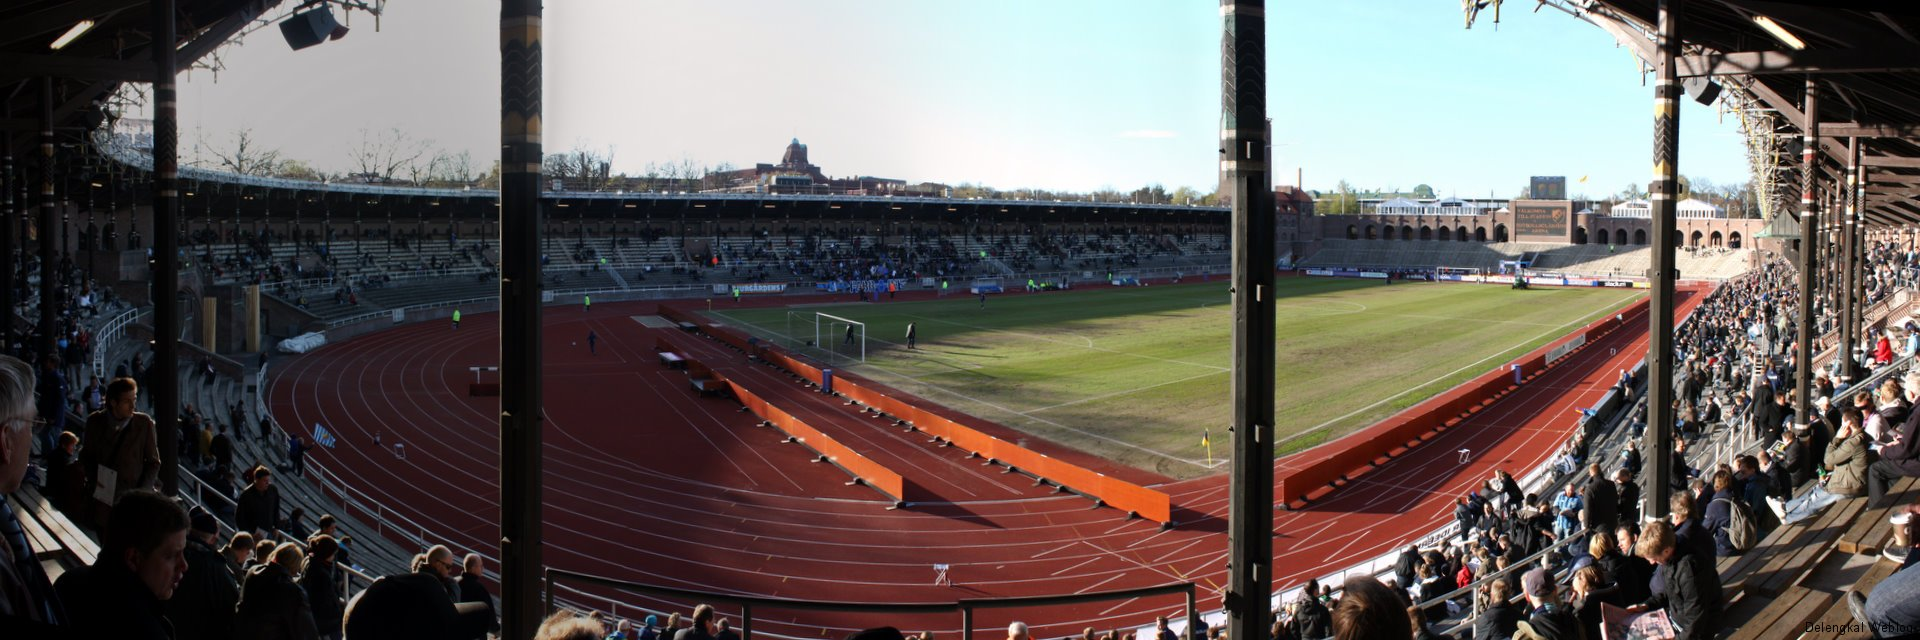 Panorama des Stadions